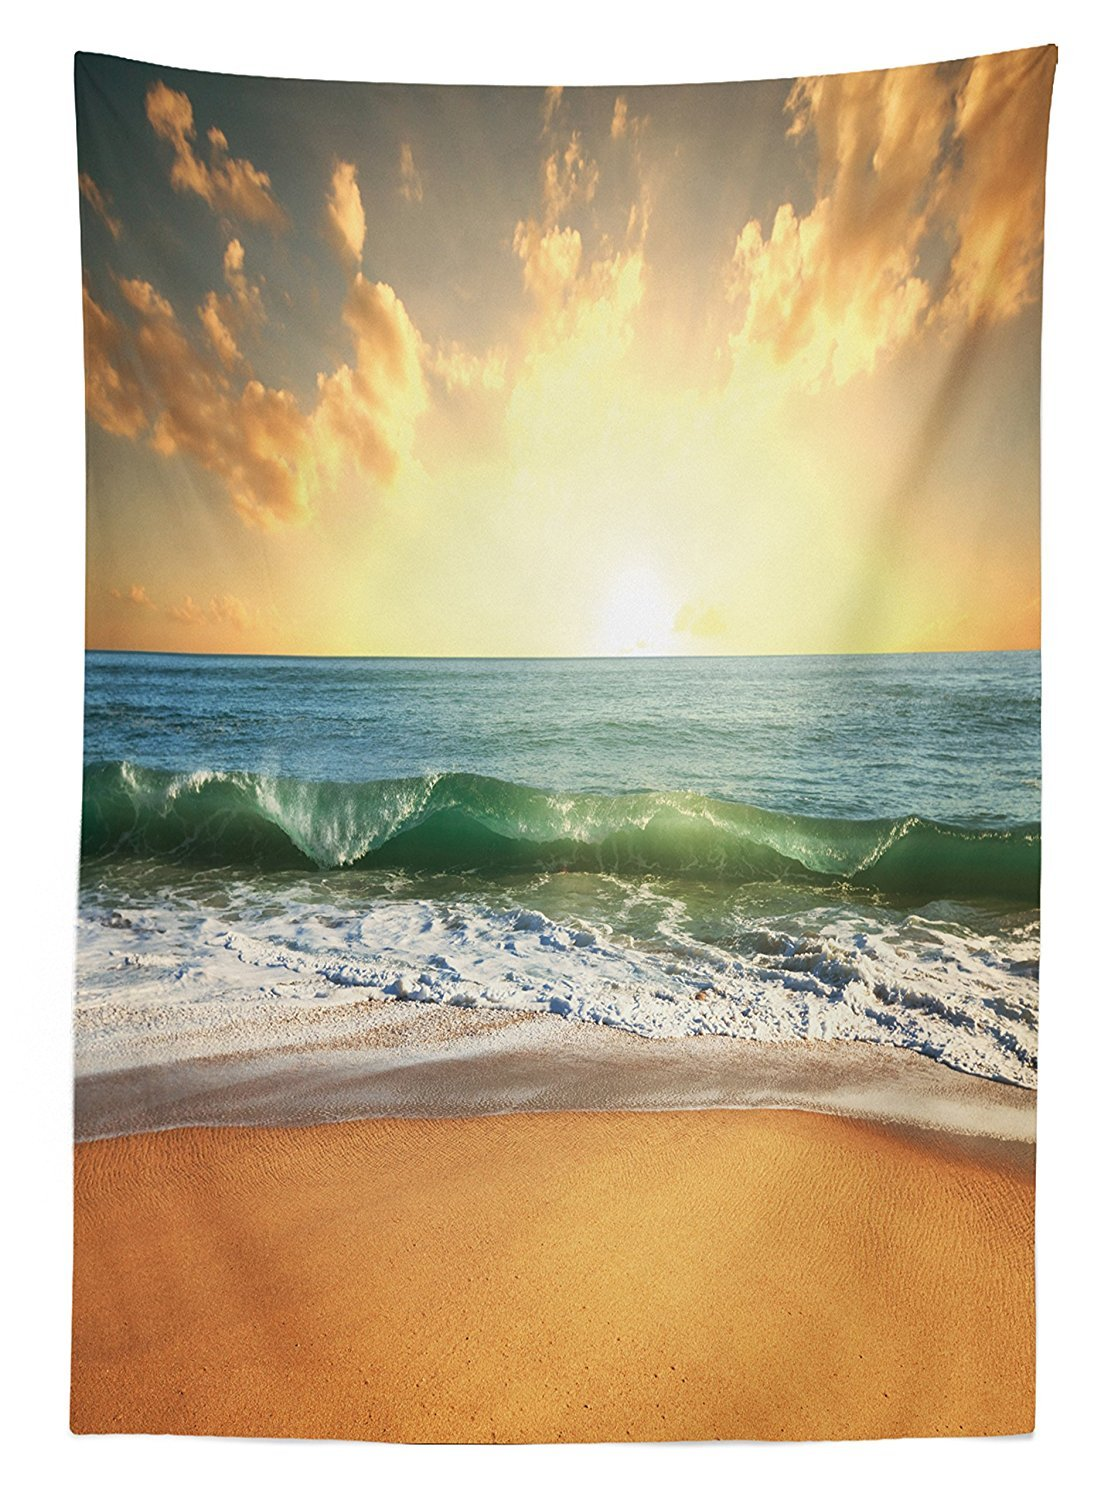 vipsung Ocean Decor Tablecloth Sunset at a Smooth Sandy Beach with Small Wave and Bubbles from The Sea Dining Room Kitchen Rectangular Table Cover